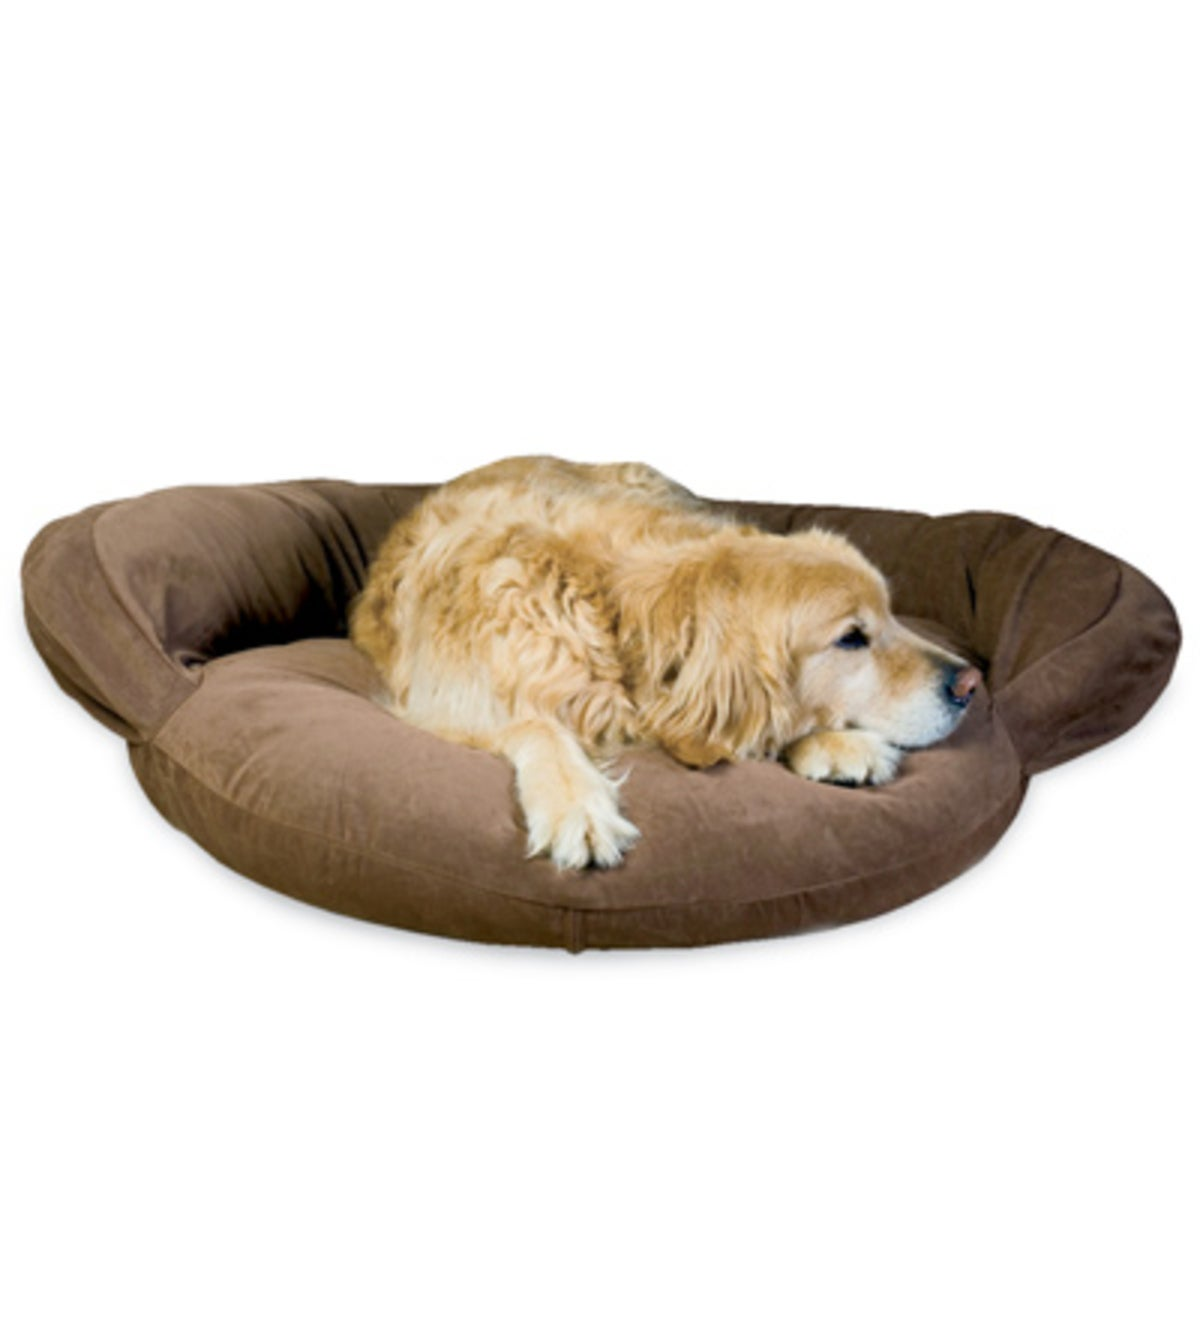 Small Bolster Pet Bed - Brown